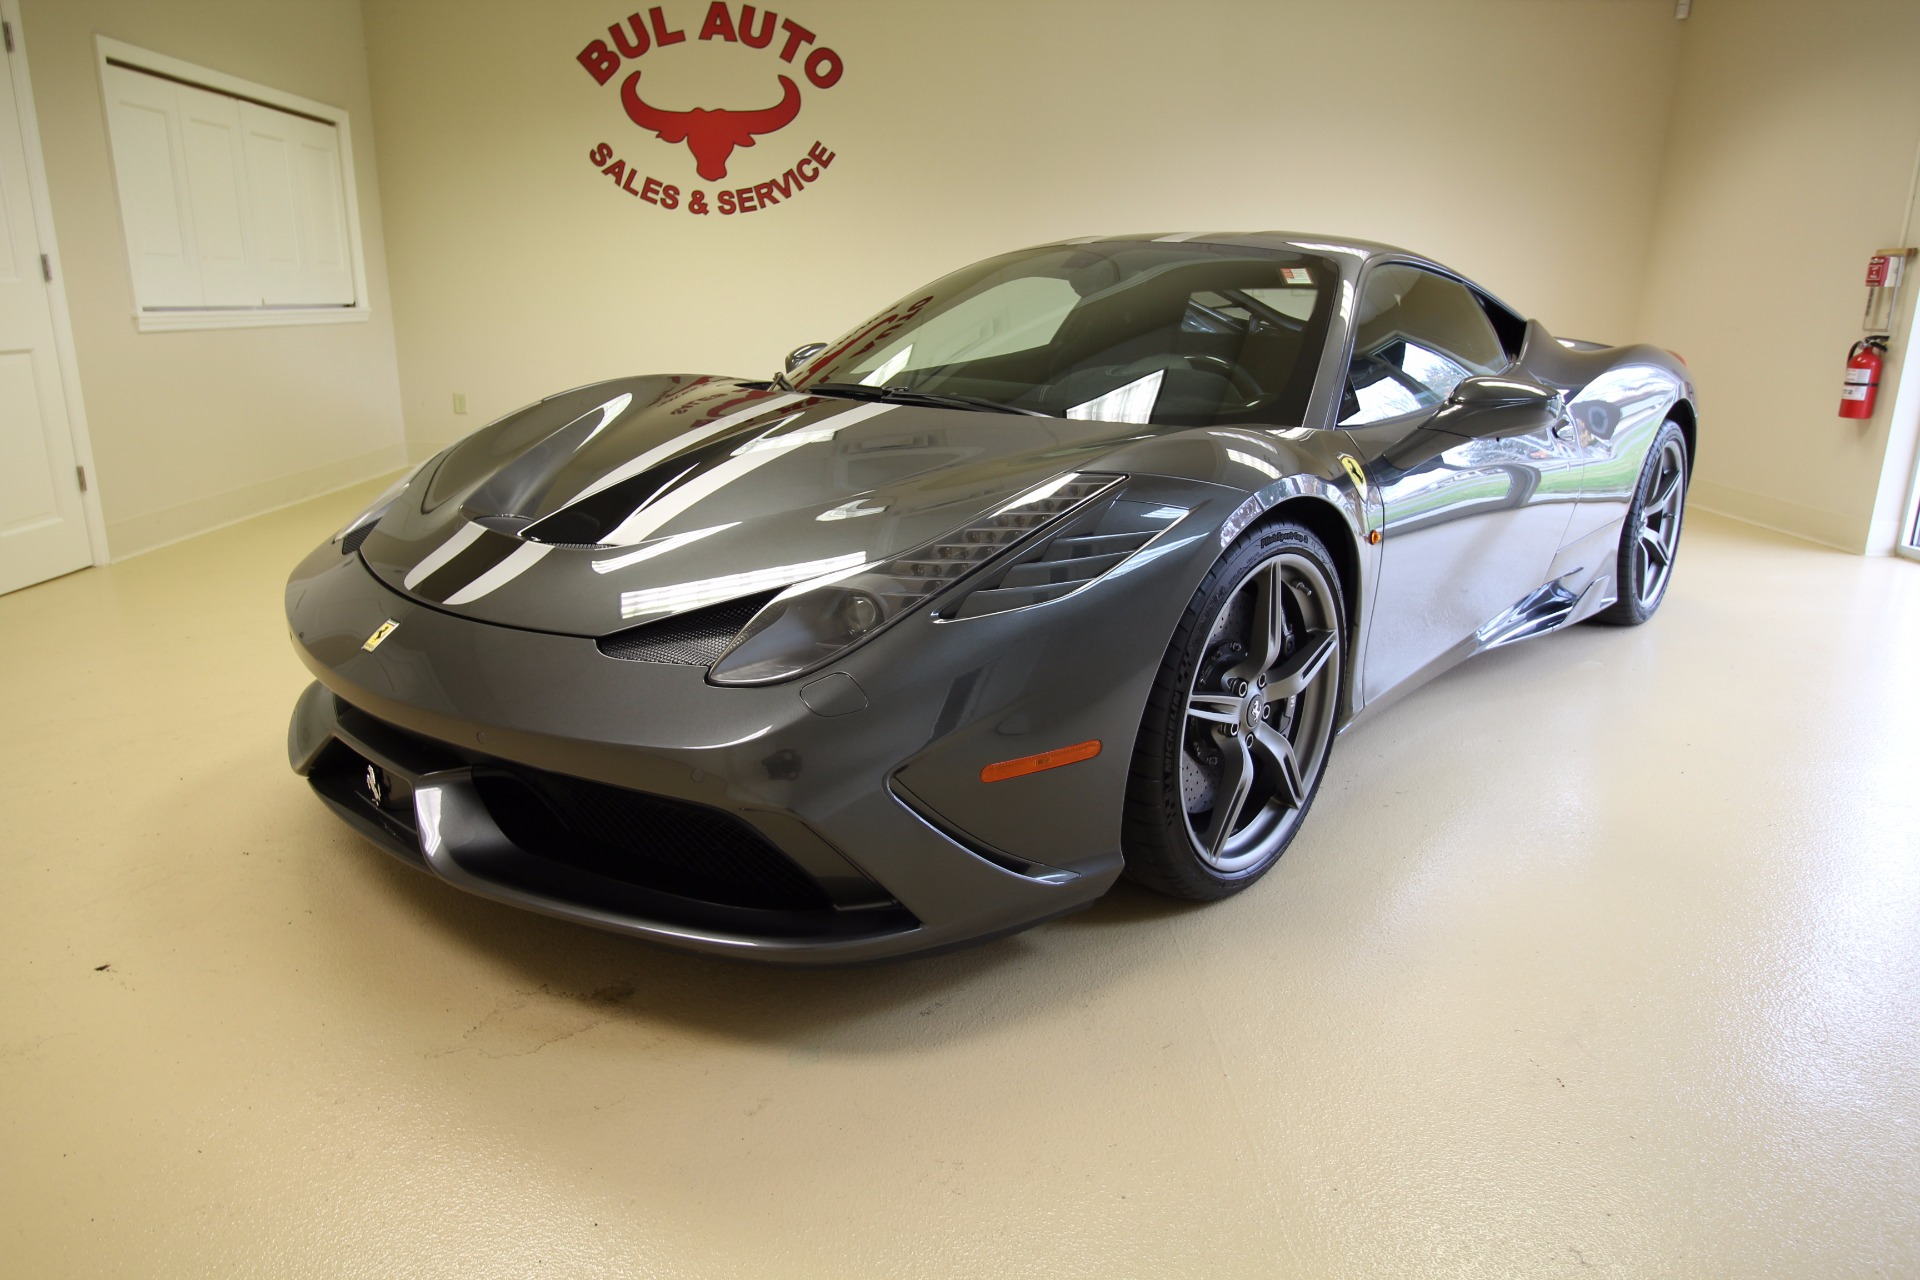 ferrari biloxi used car exotics cars classic for mississippi coupe italia near sale